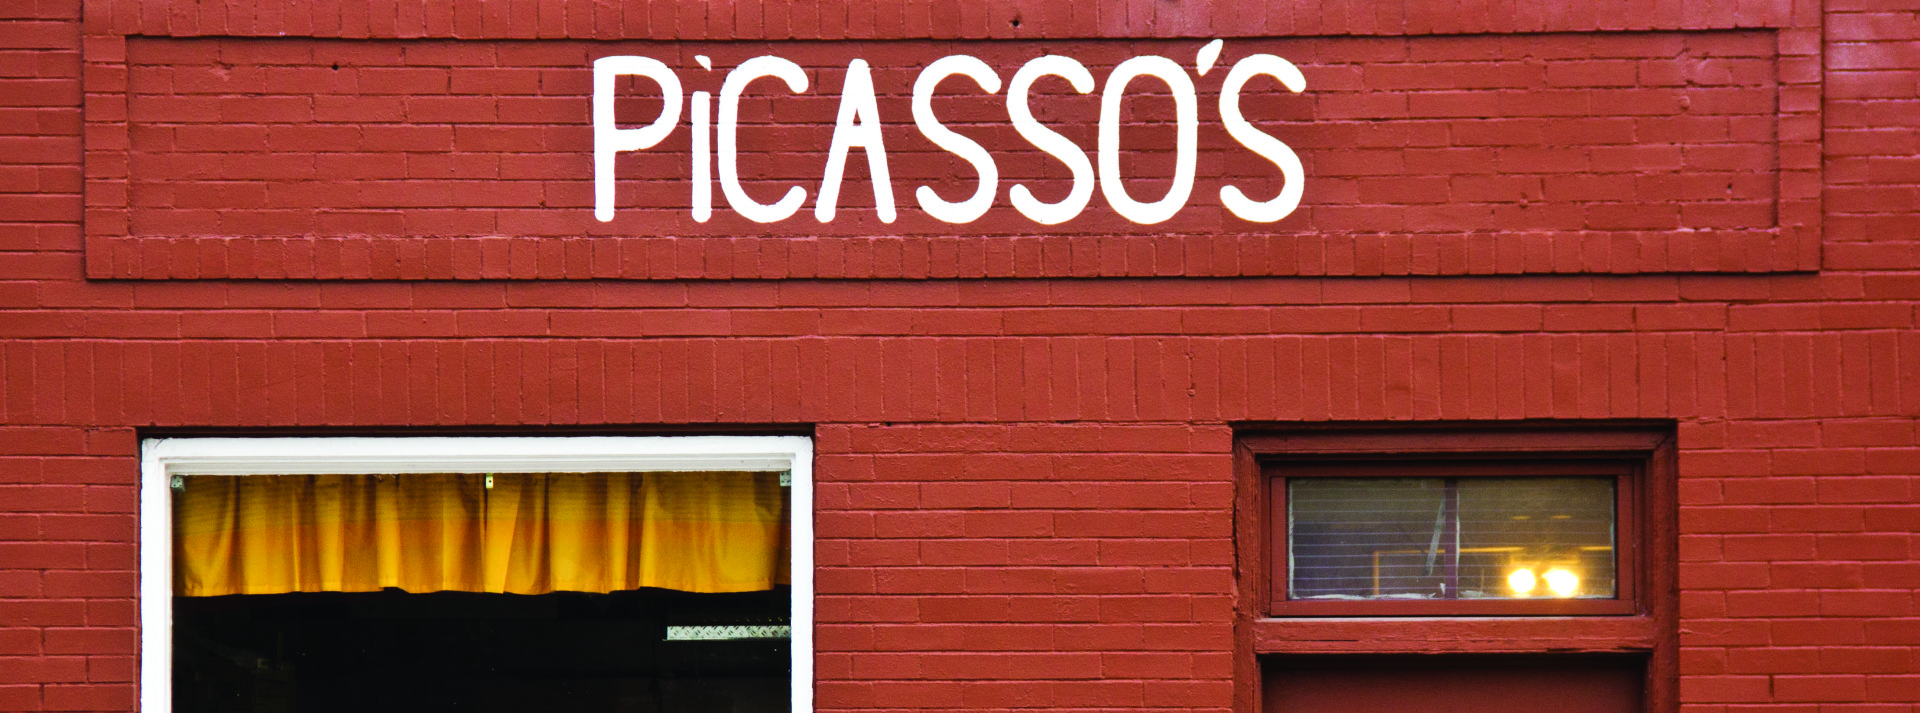 Picasso's Pizza offers high quality, good selection